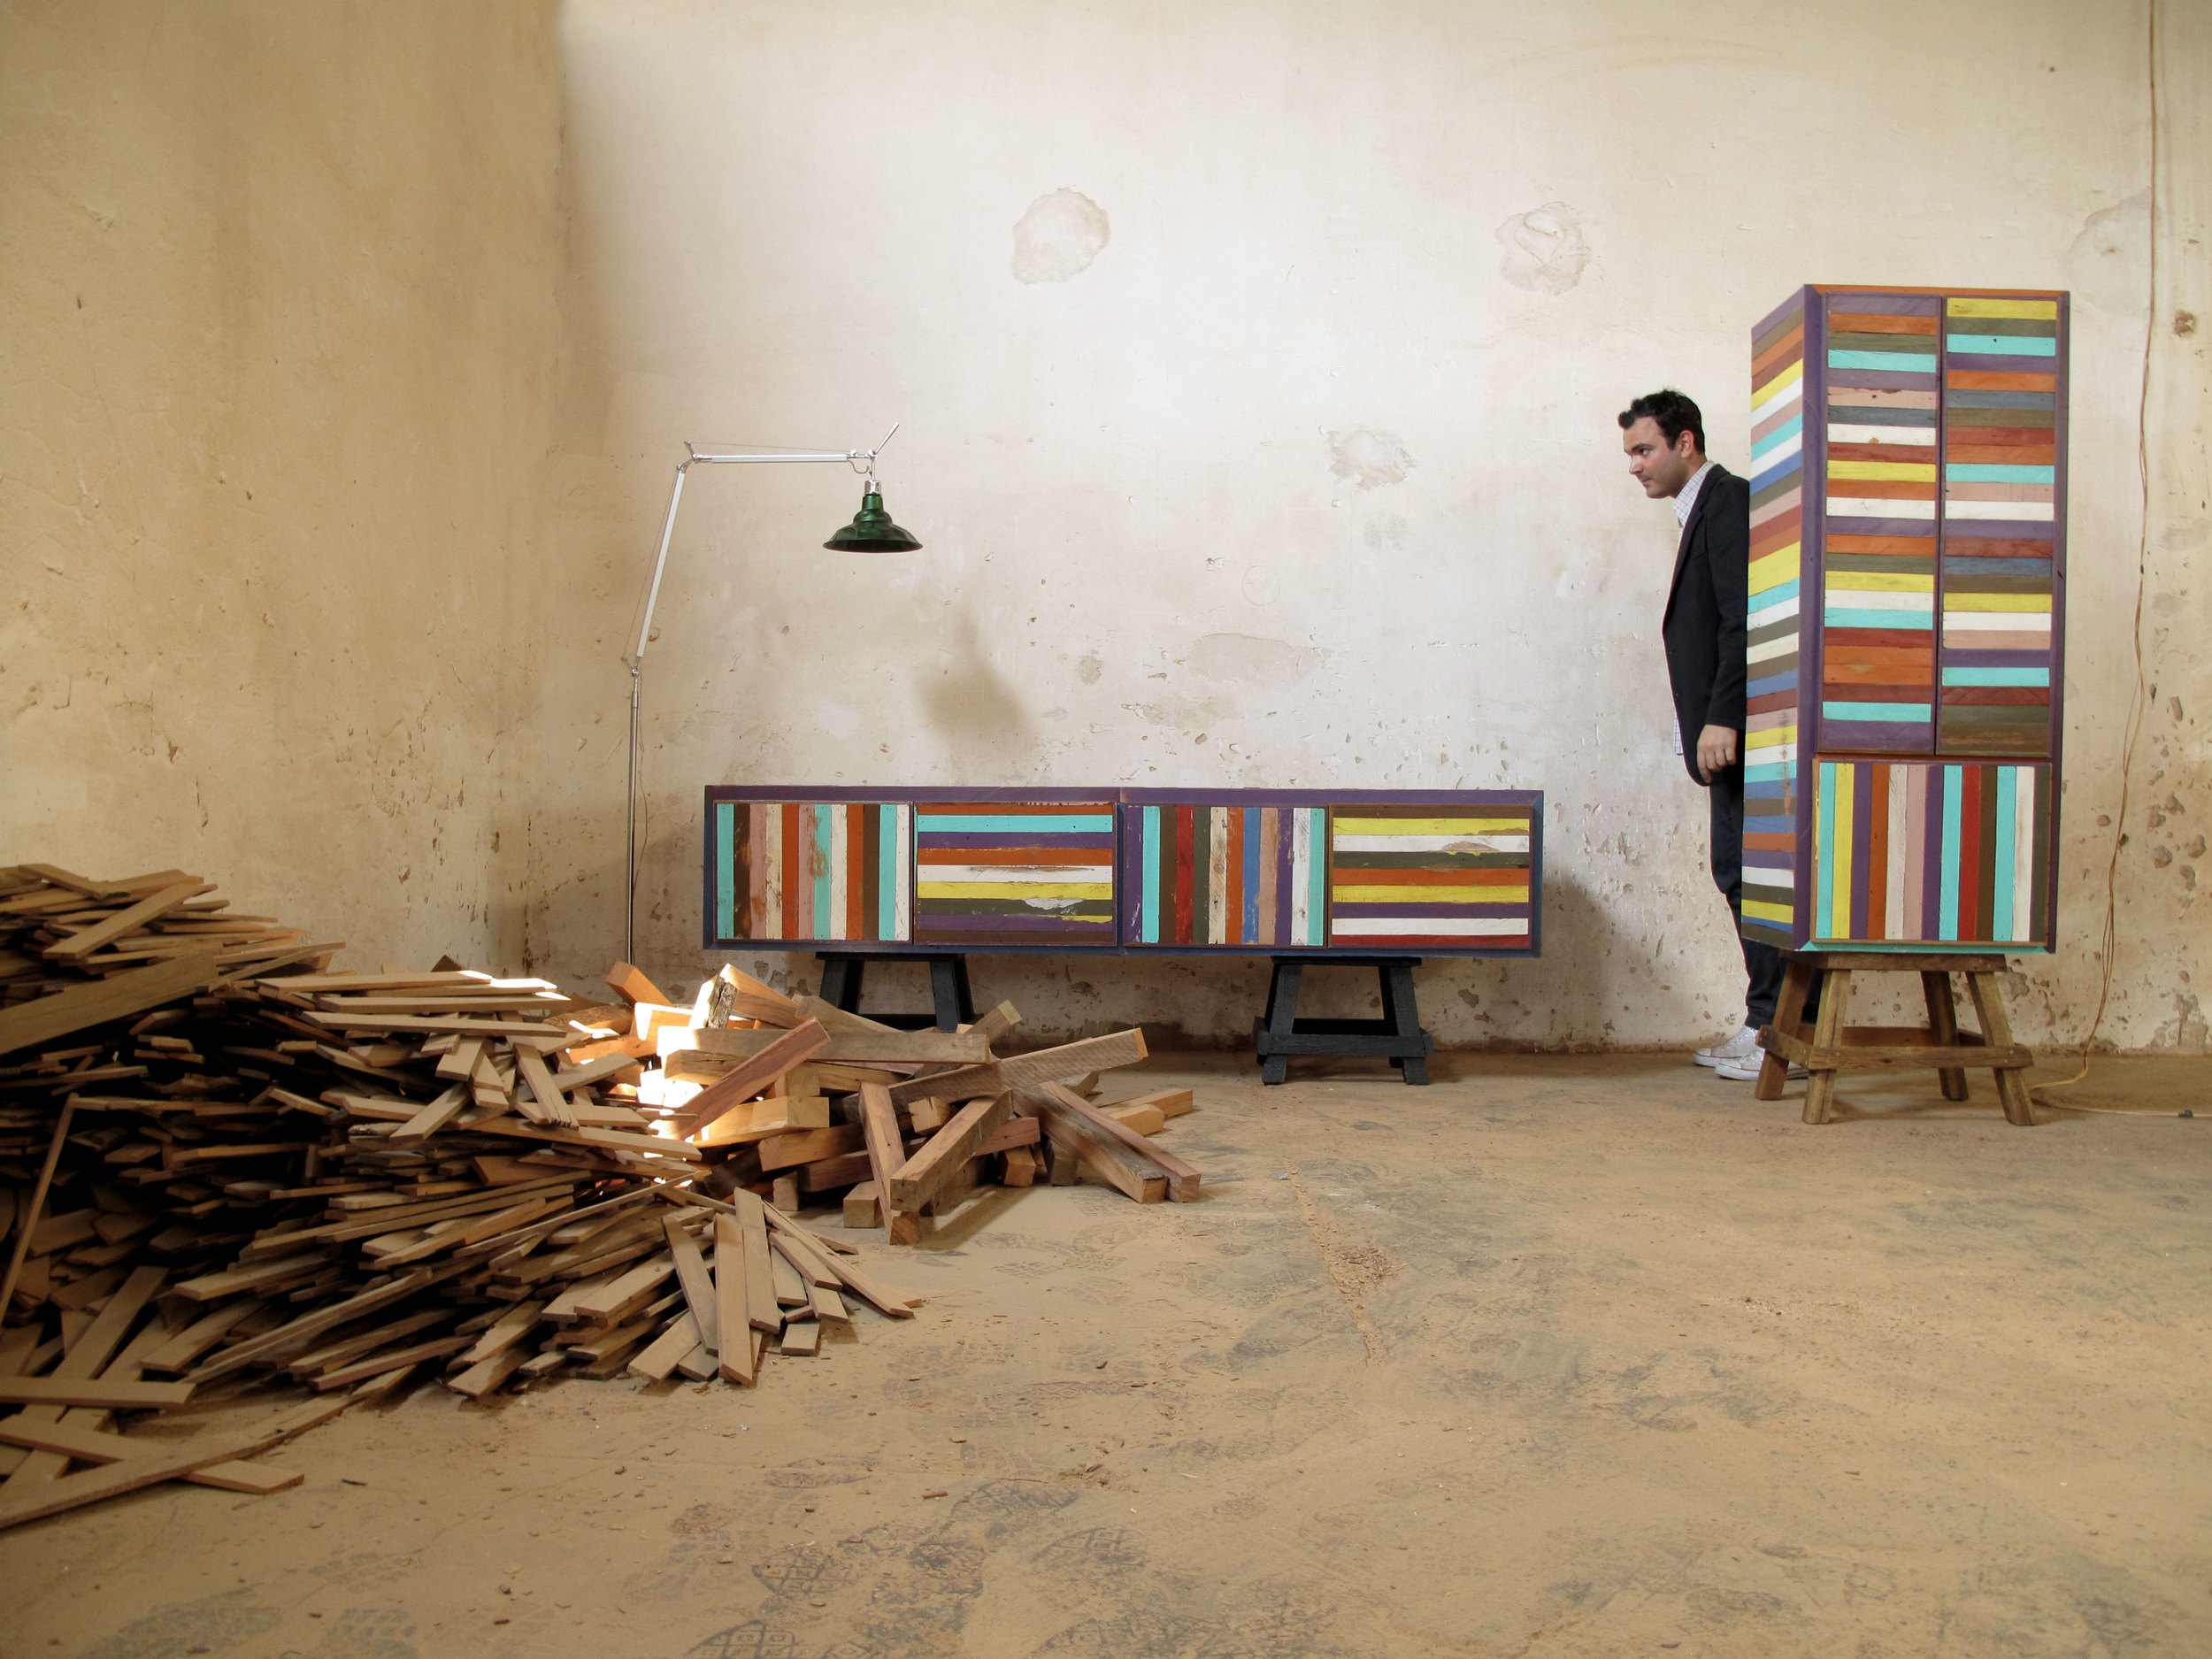 Press release image of Brunno Jahara among examples of Neorustica furniture